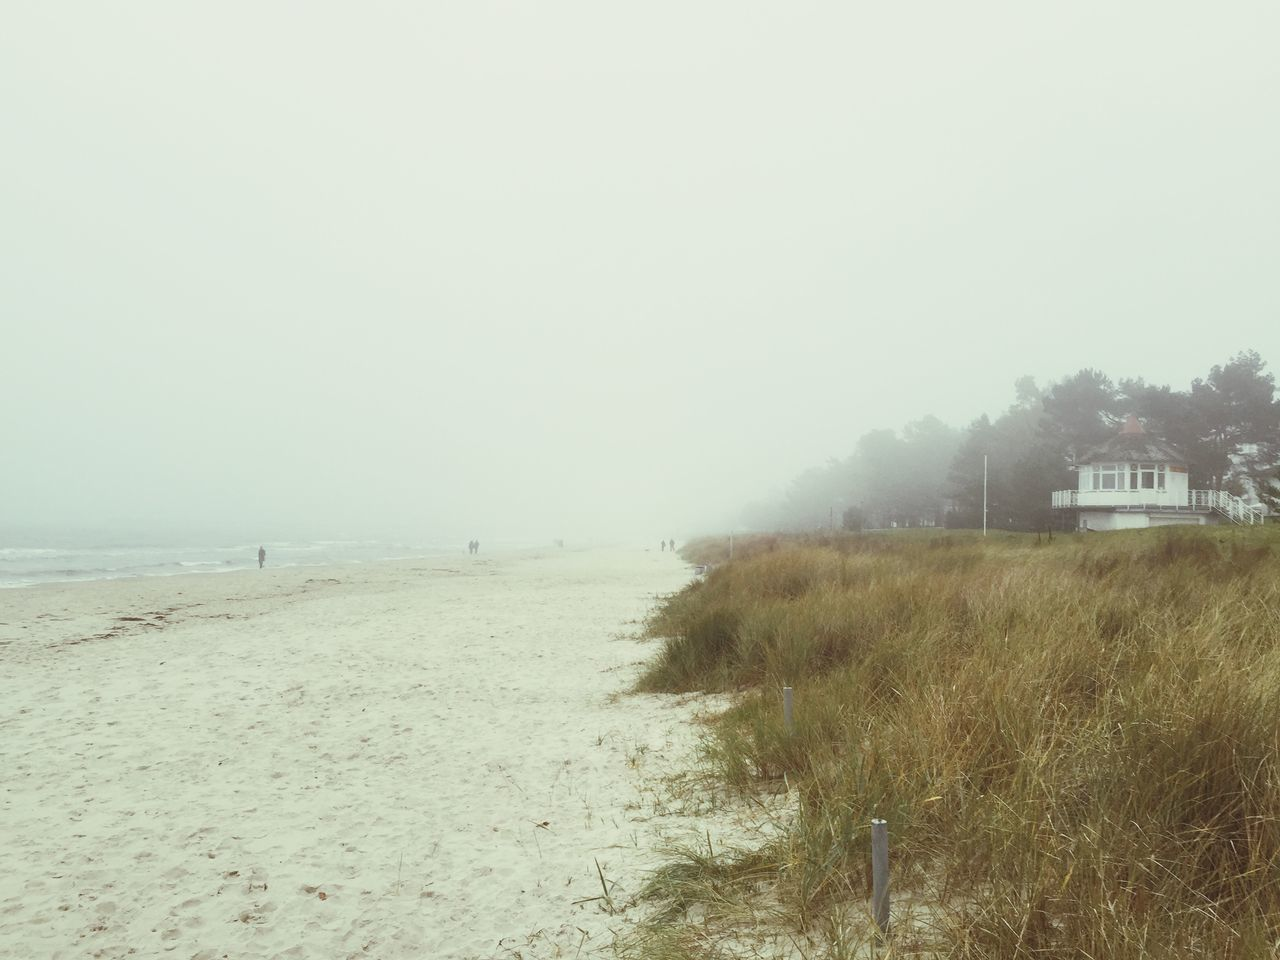 Grass Growing On Beach Against Clear Sky In Foggy Weather